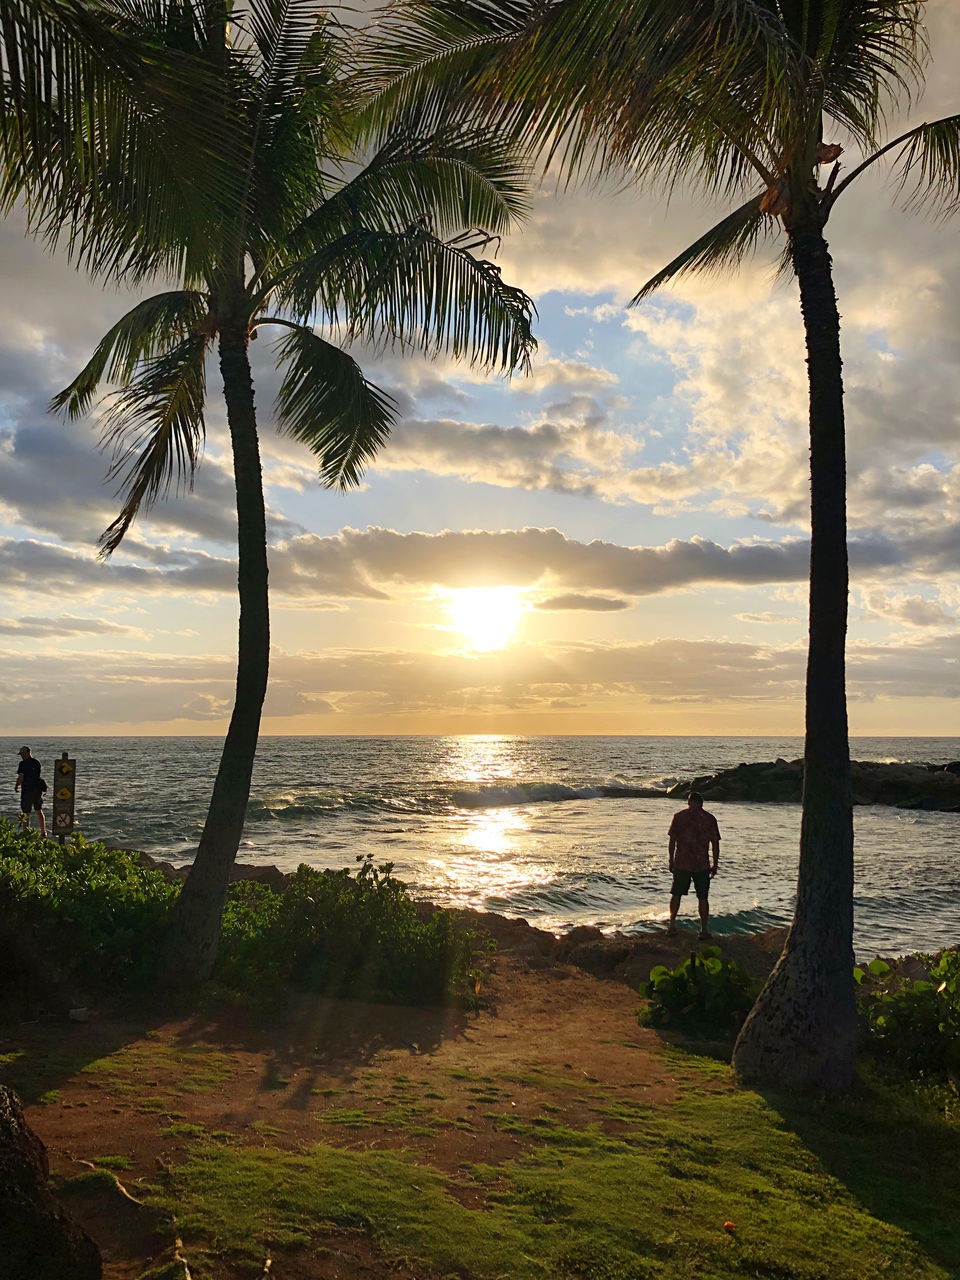 water, plant, tree, sky, beauty in nature, scenics - nature, sea, palm tree, beach, land, sunset, cloud - sky, nature, real people, tranquil scene, tropical climate, tranquility, growth, tree trunk, horizon over water, outdoors